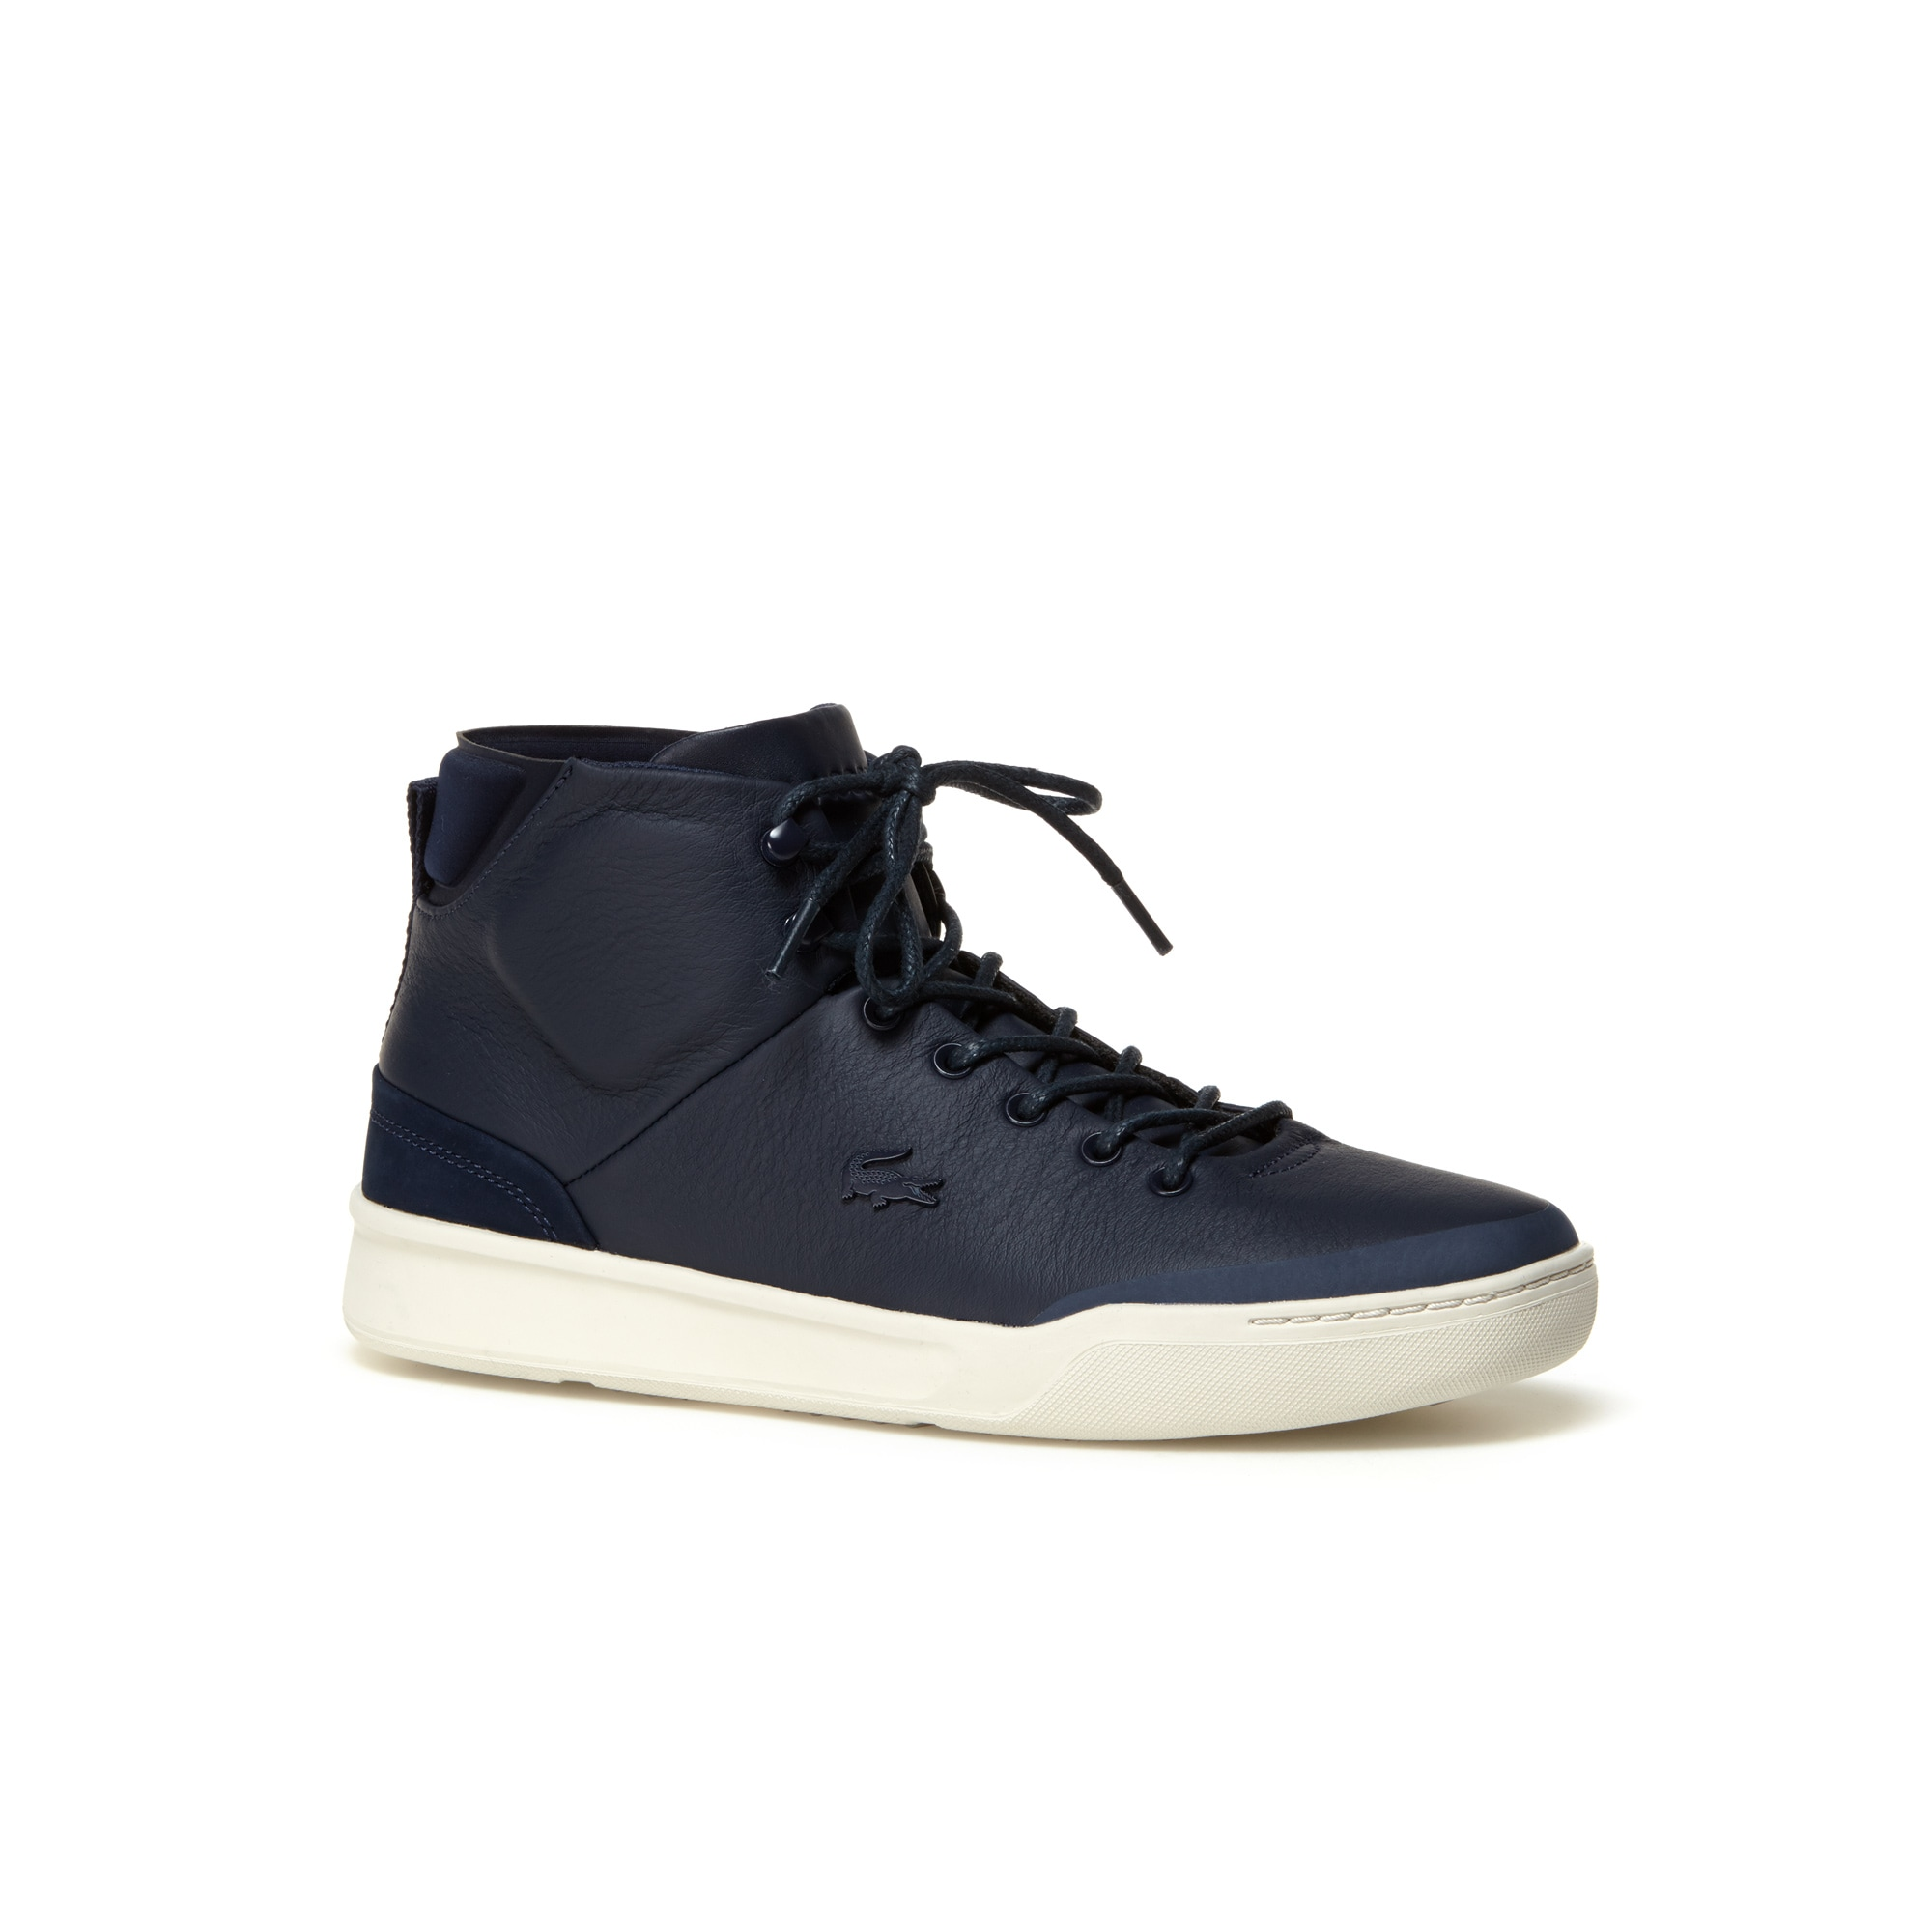 Men's Explorateur Classic Mid Leather Sneakers